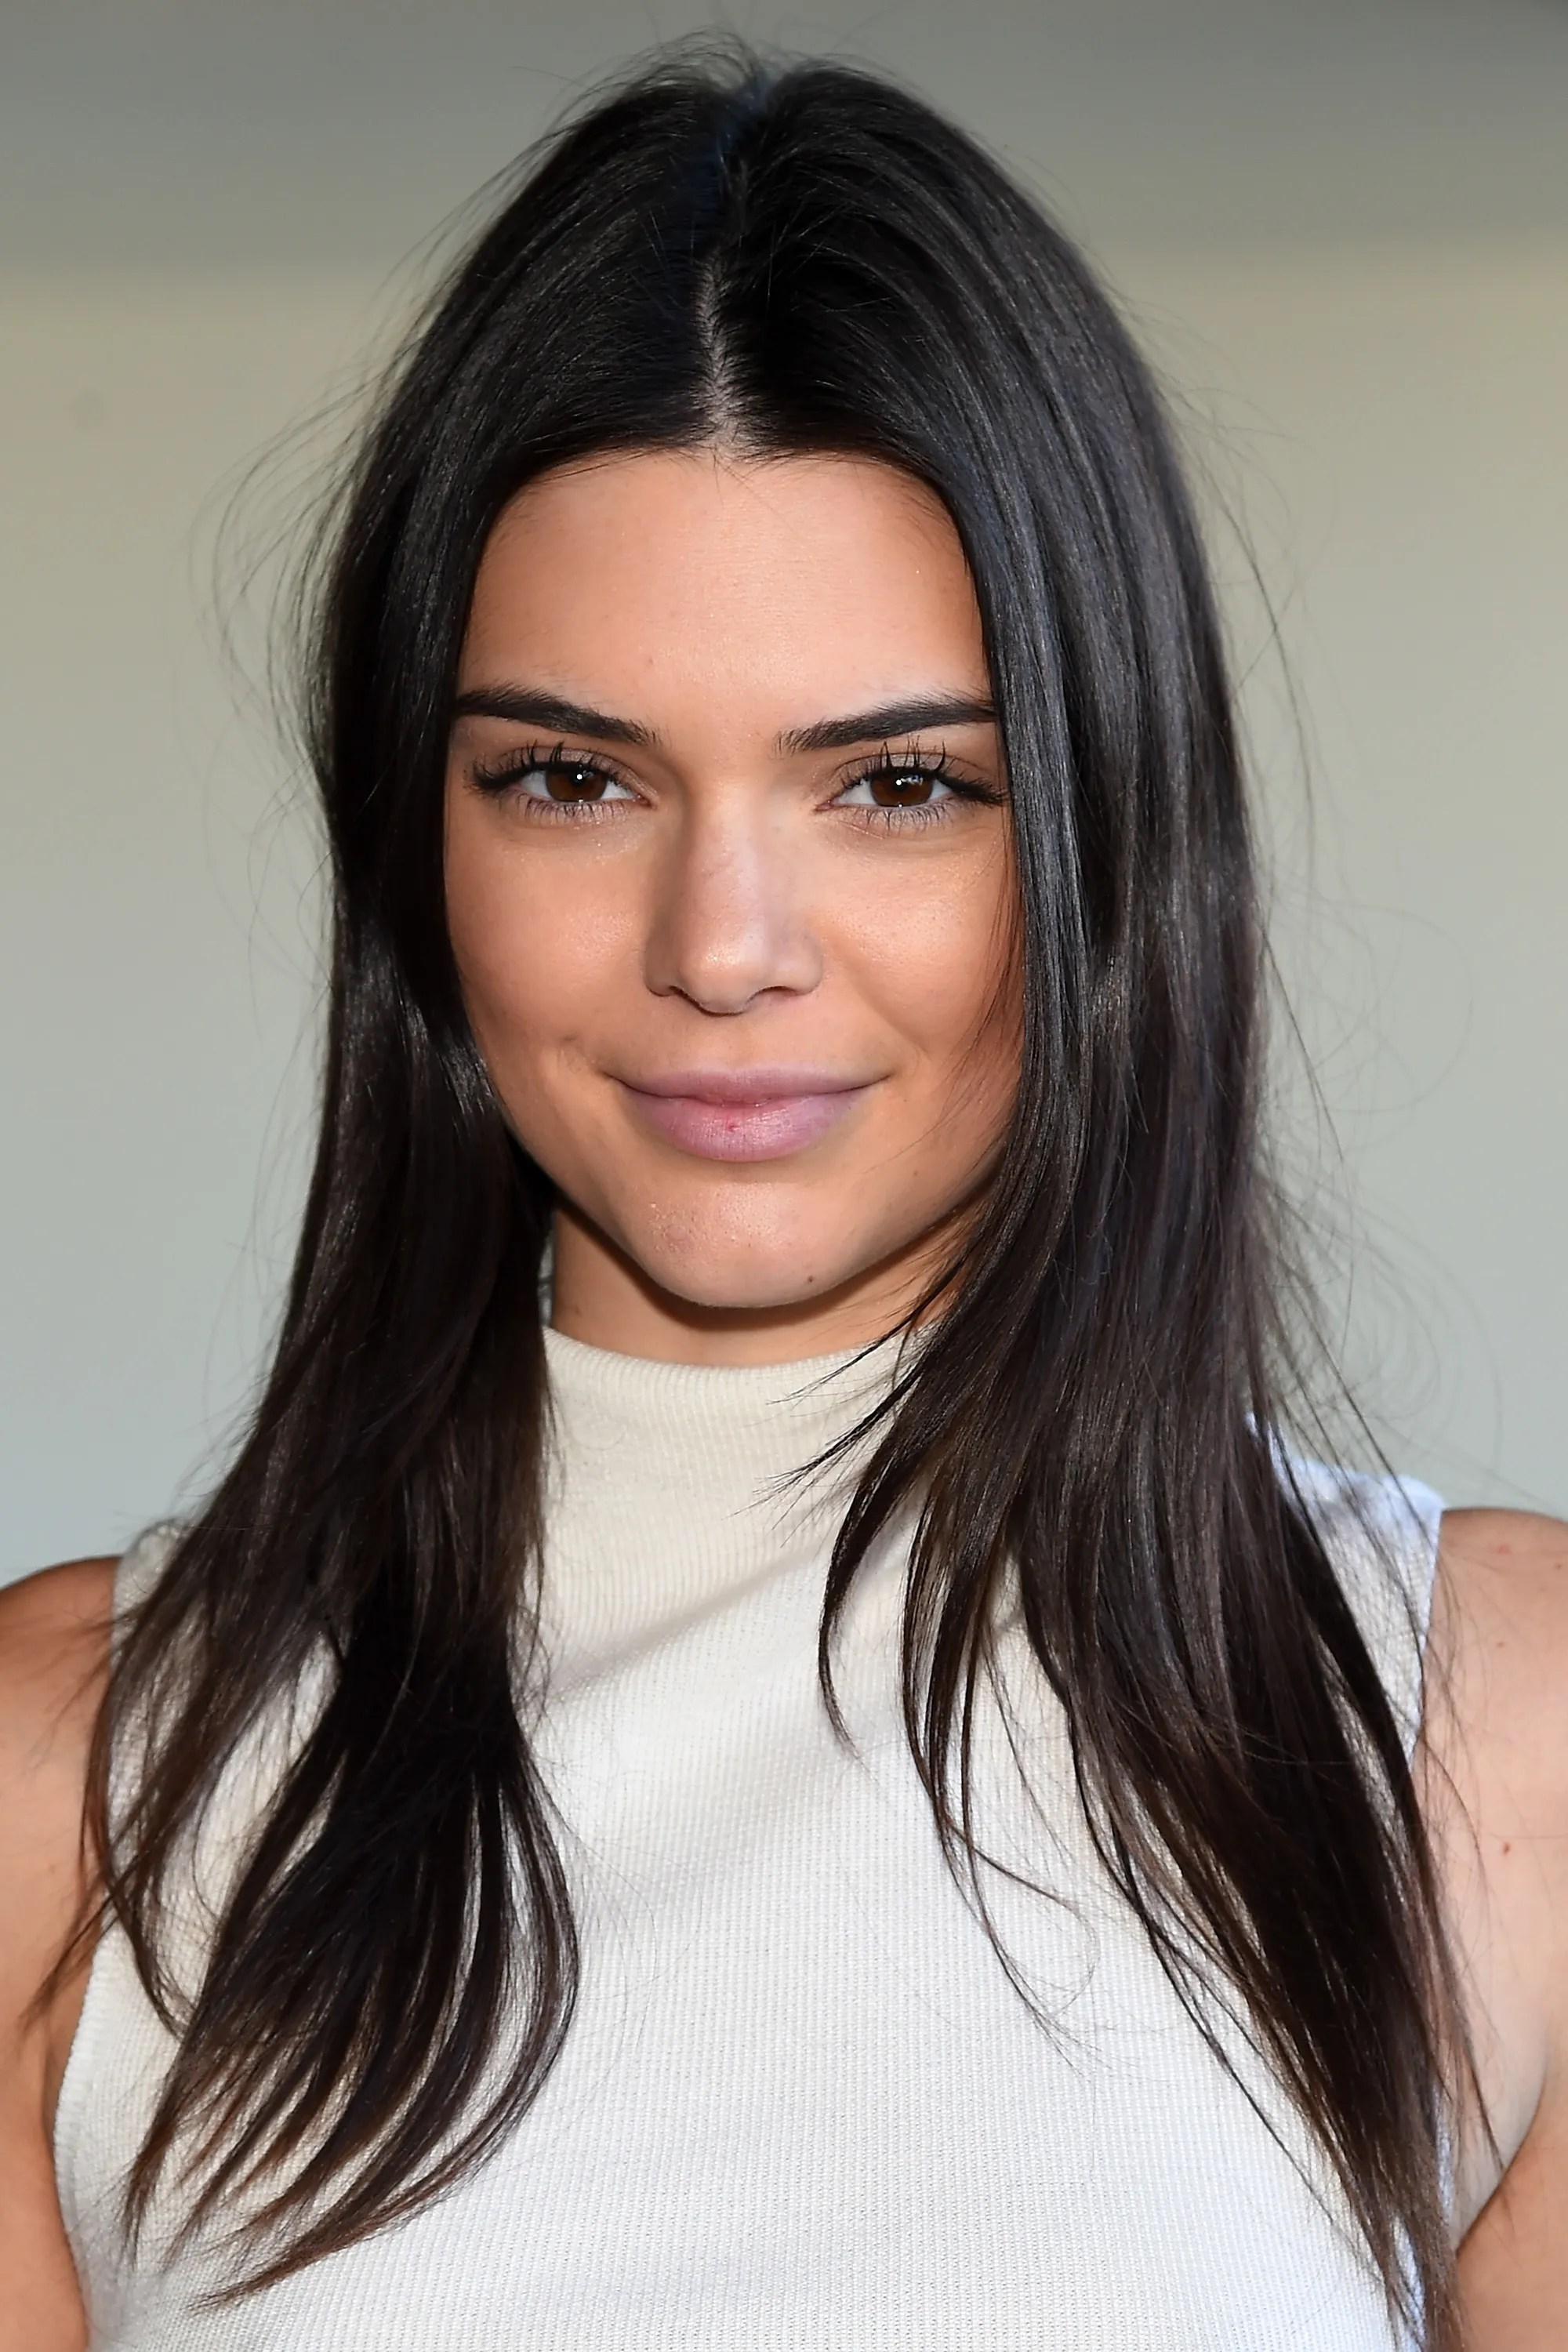 Kendall Jenner Defines What A Strong Woman Is Teen Vogue